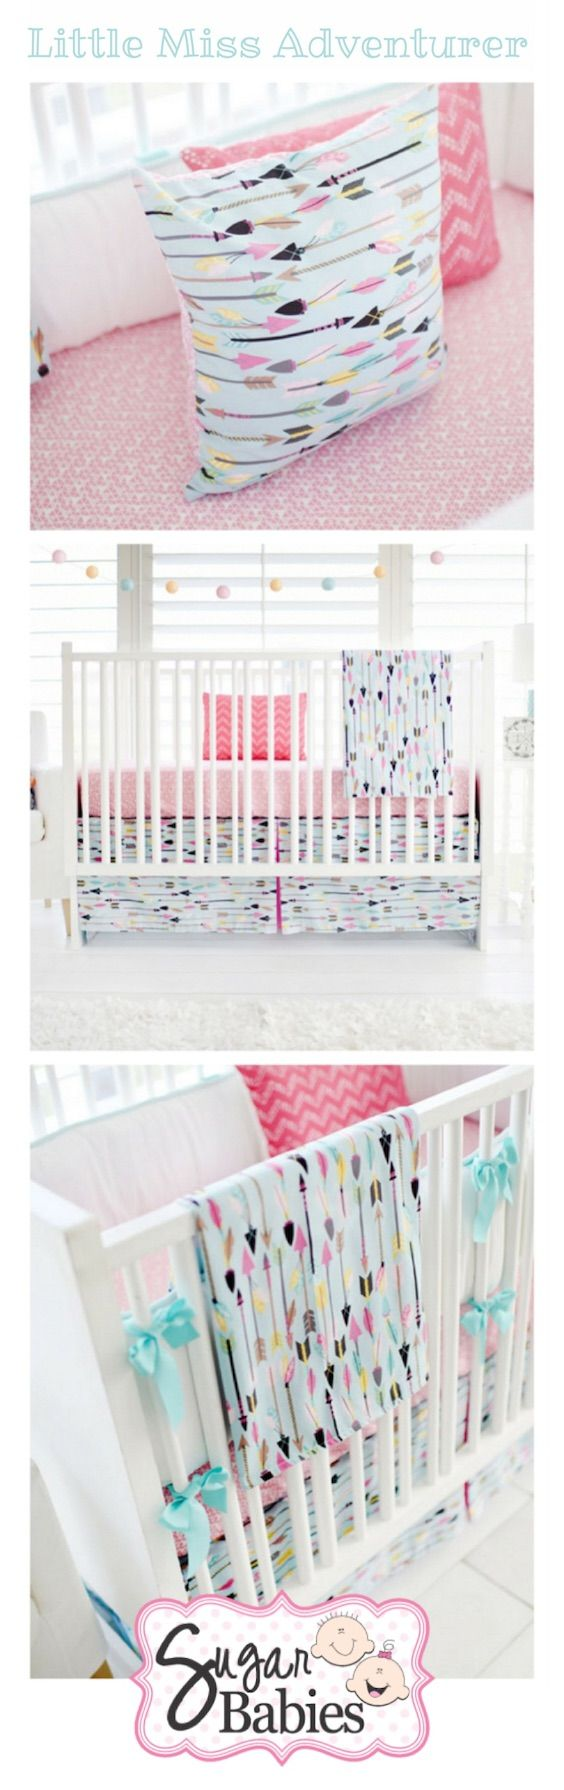 Cant get enough of this little adventurer baby bedding! The airy teal and pink arrows are perfect for a baby girl's room. We're feeling inspired, how about you!?